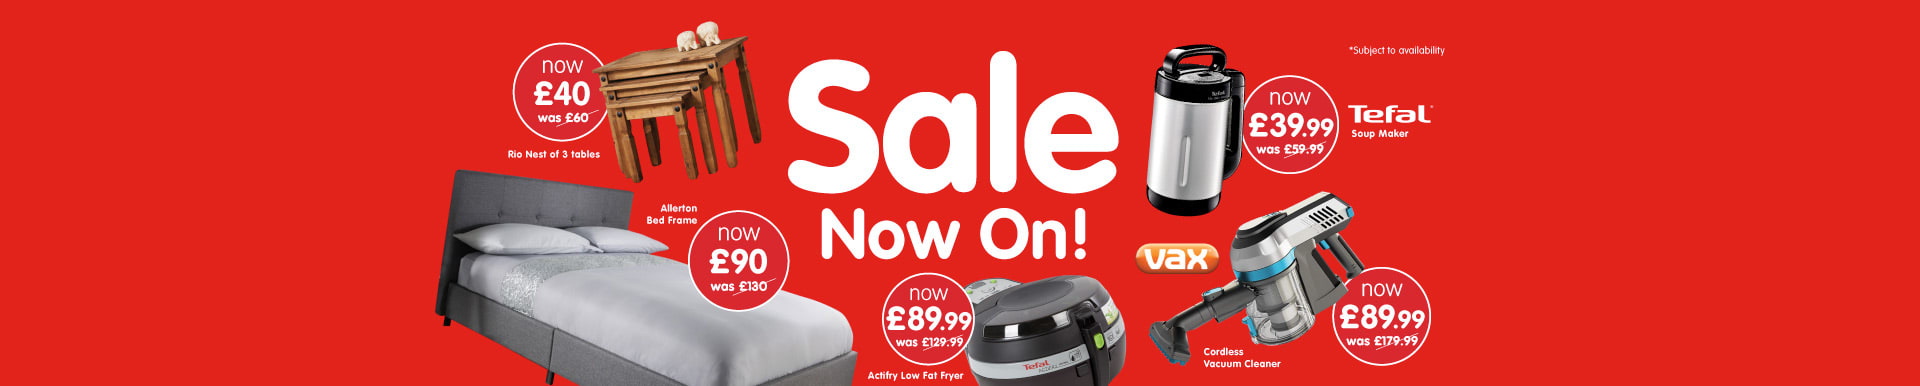 Sale now on at B&M.